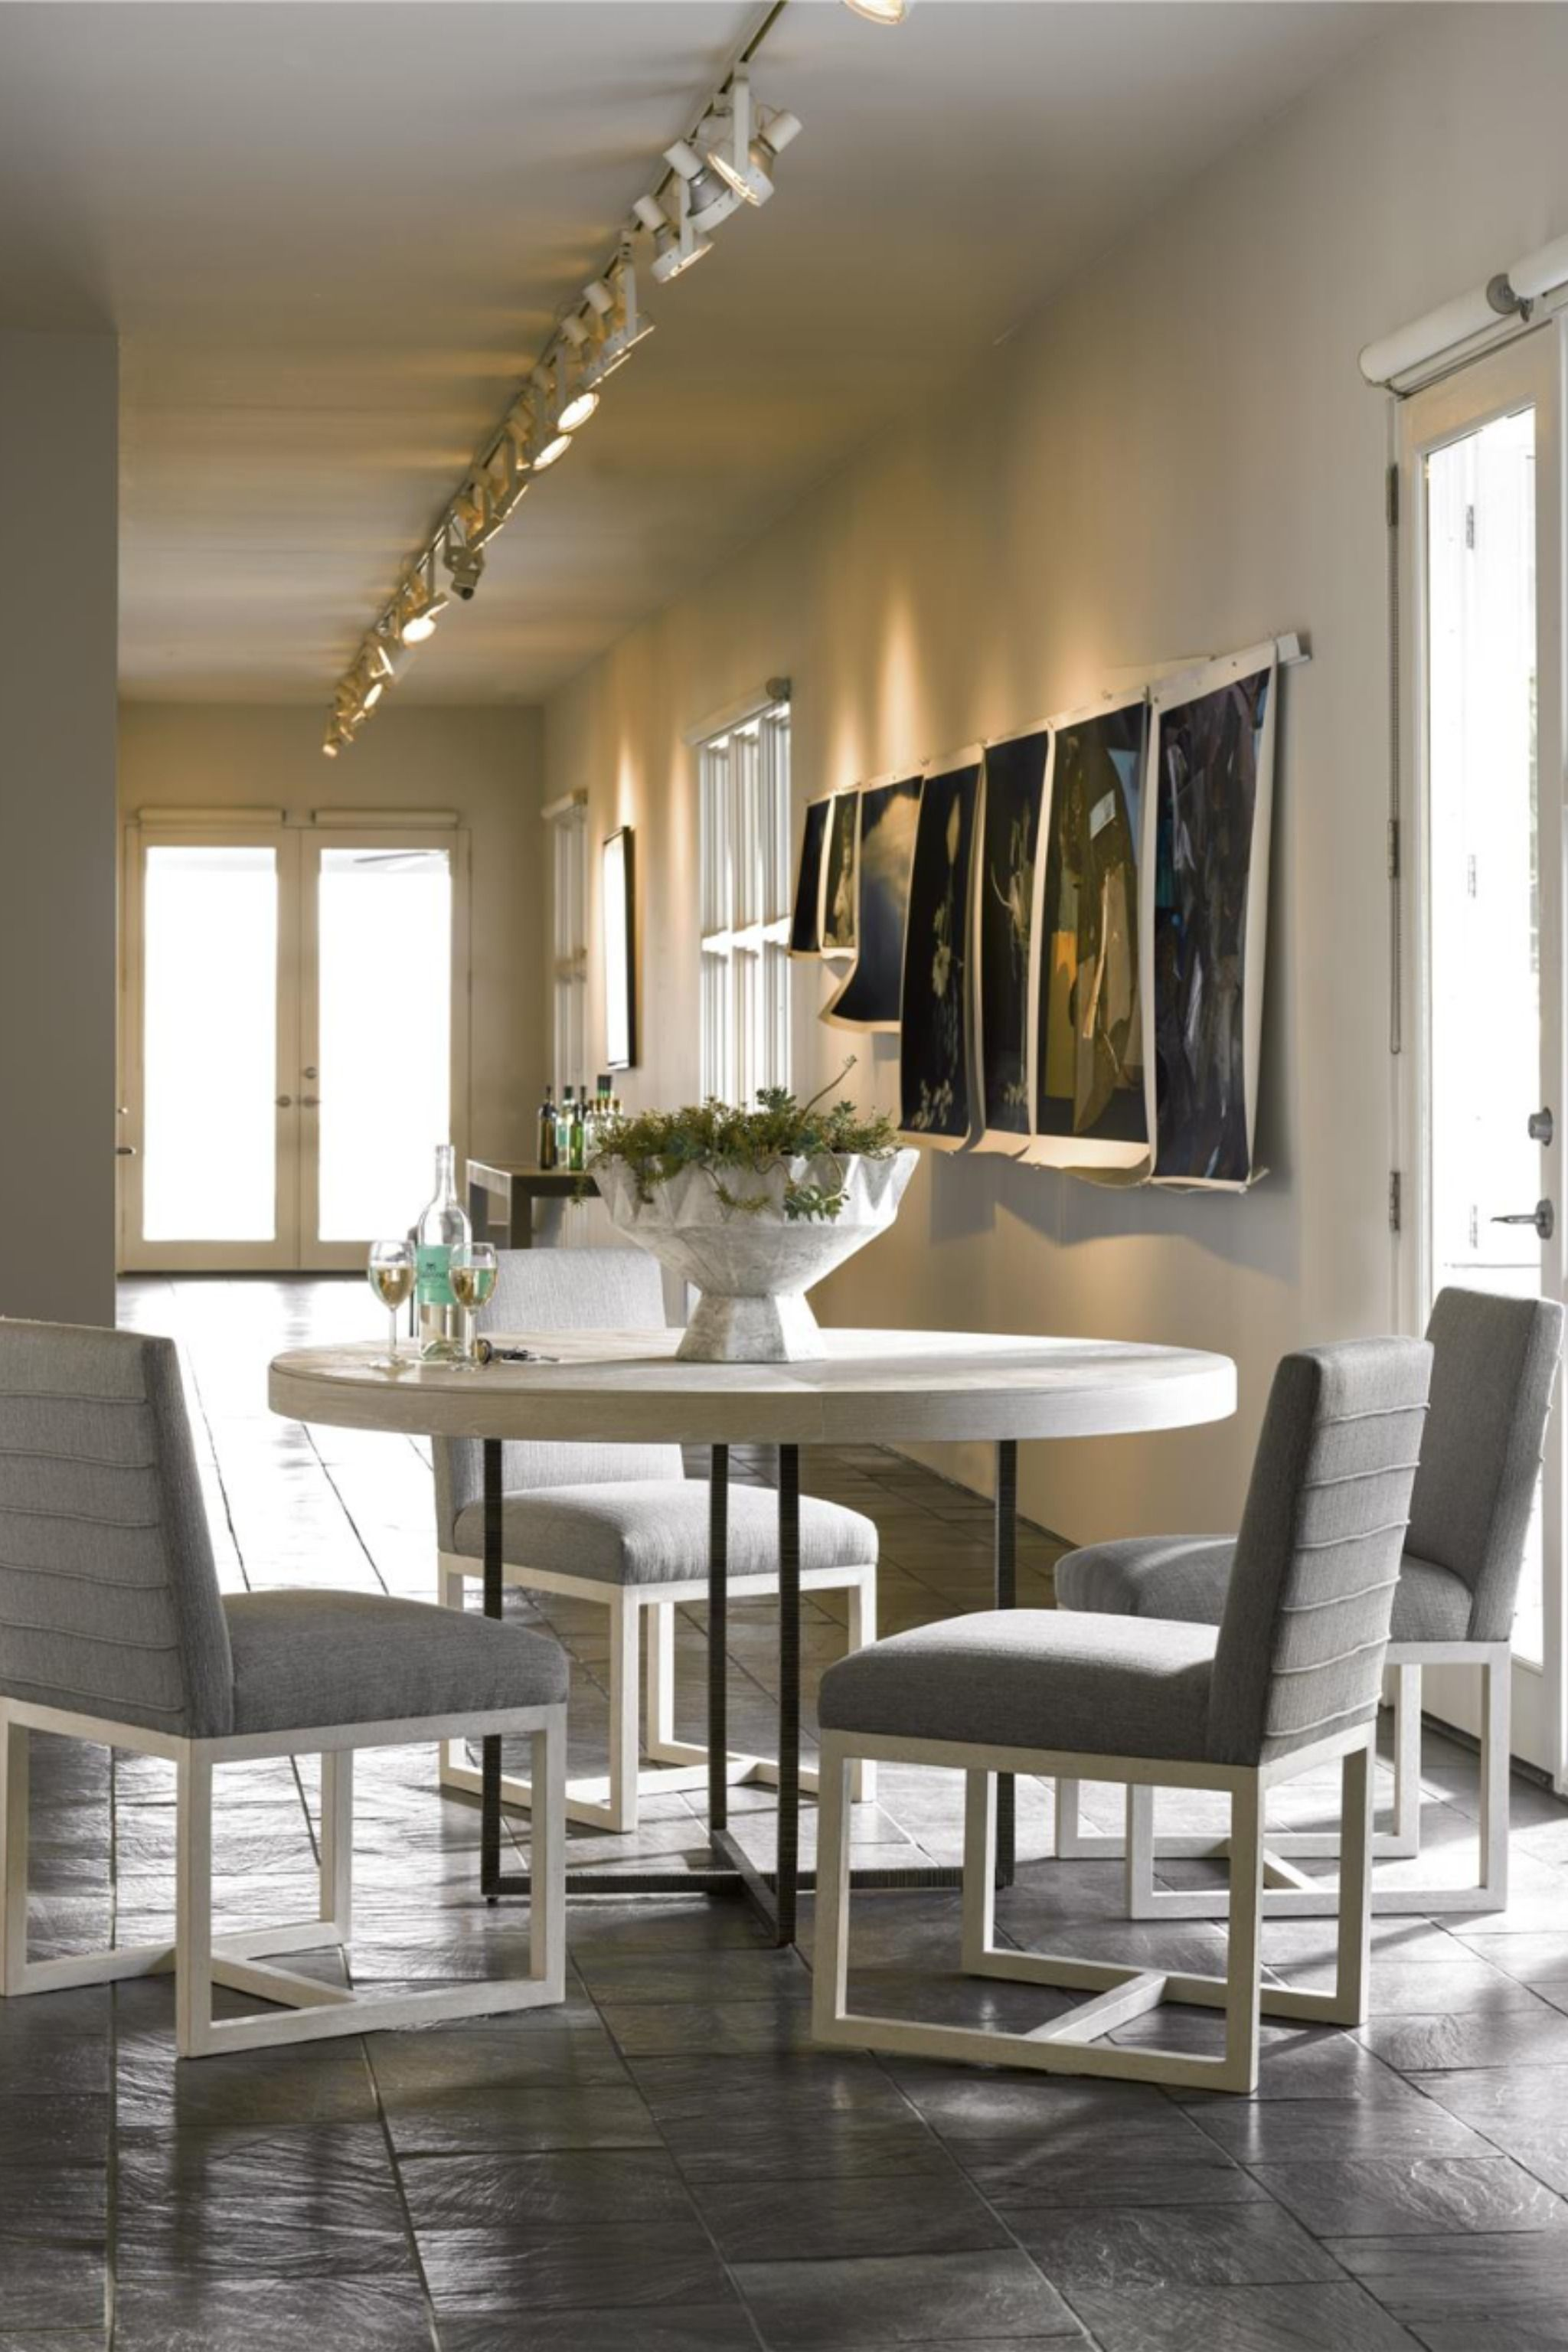 The Two Tone Robarbs Round Dining Table Will Bring An Airy Charm